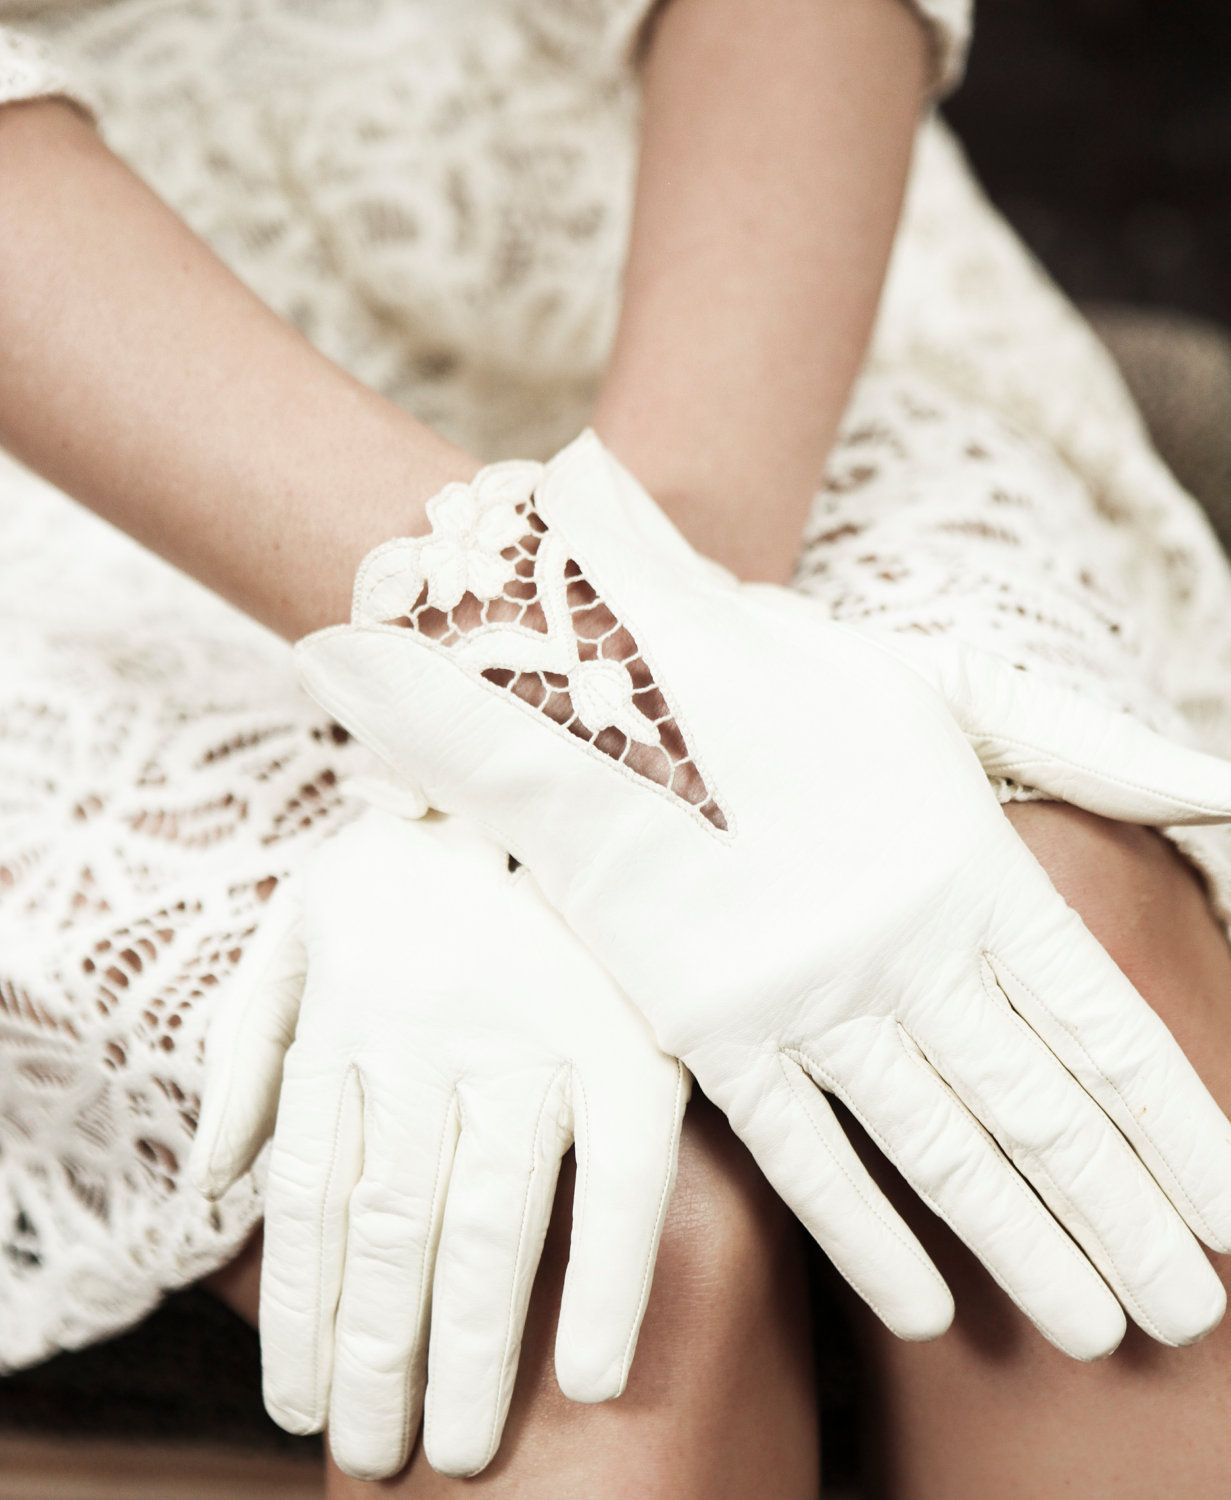 Vintage ladies leather opera gloves - Vintage Leather Off White Bridal Gloves Antique Gloves With Lace Cut Out Detail Ready To Ship